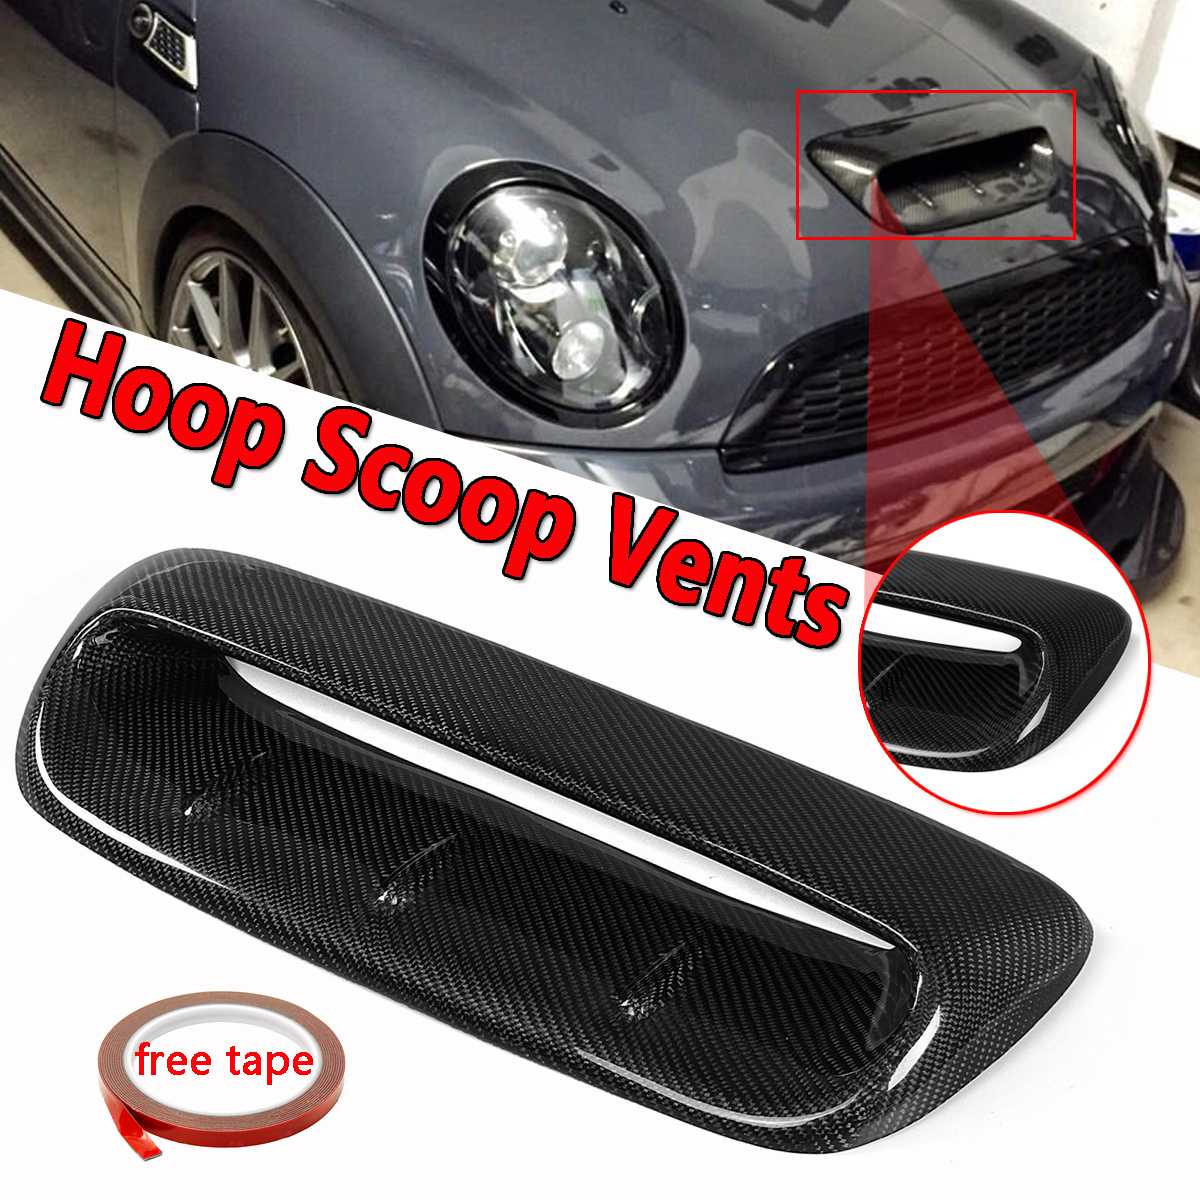 Front Hood Vent For Mini Cooper S R56 2007 2014 VTX Style Real Carbon Fiber Flow Intake Hood Scoop Vent Bonnet Decorative Cover